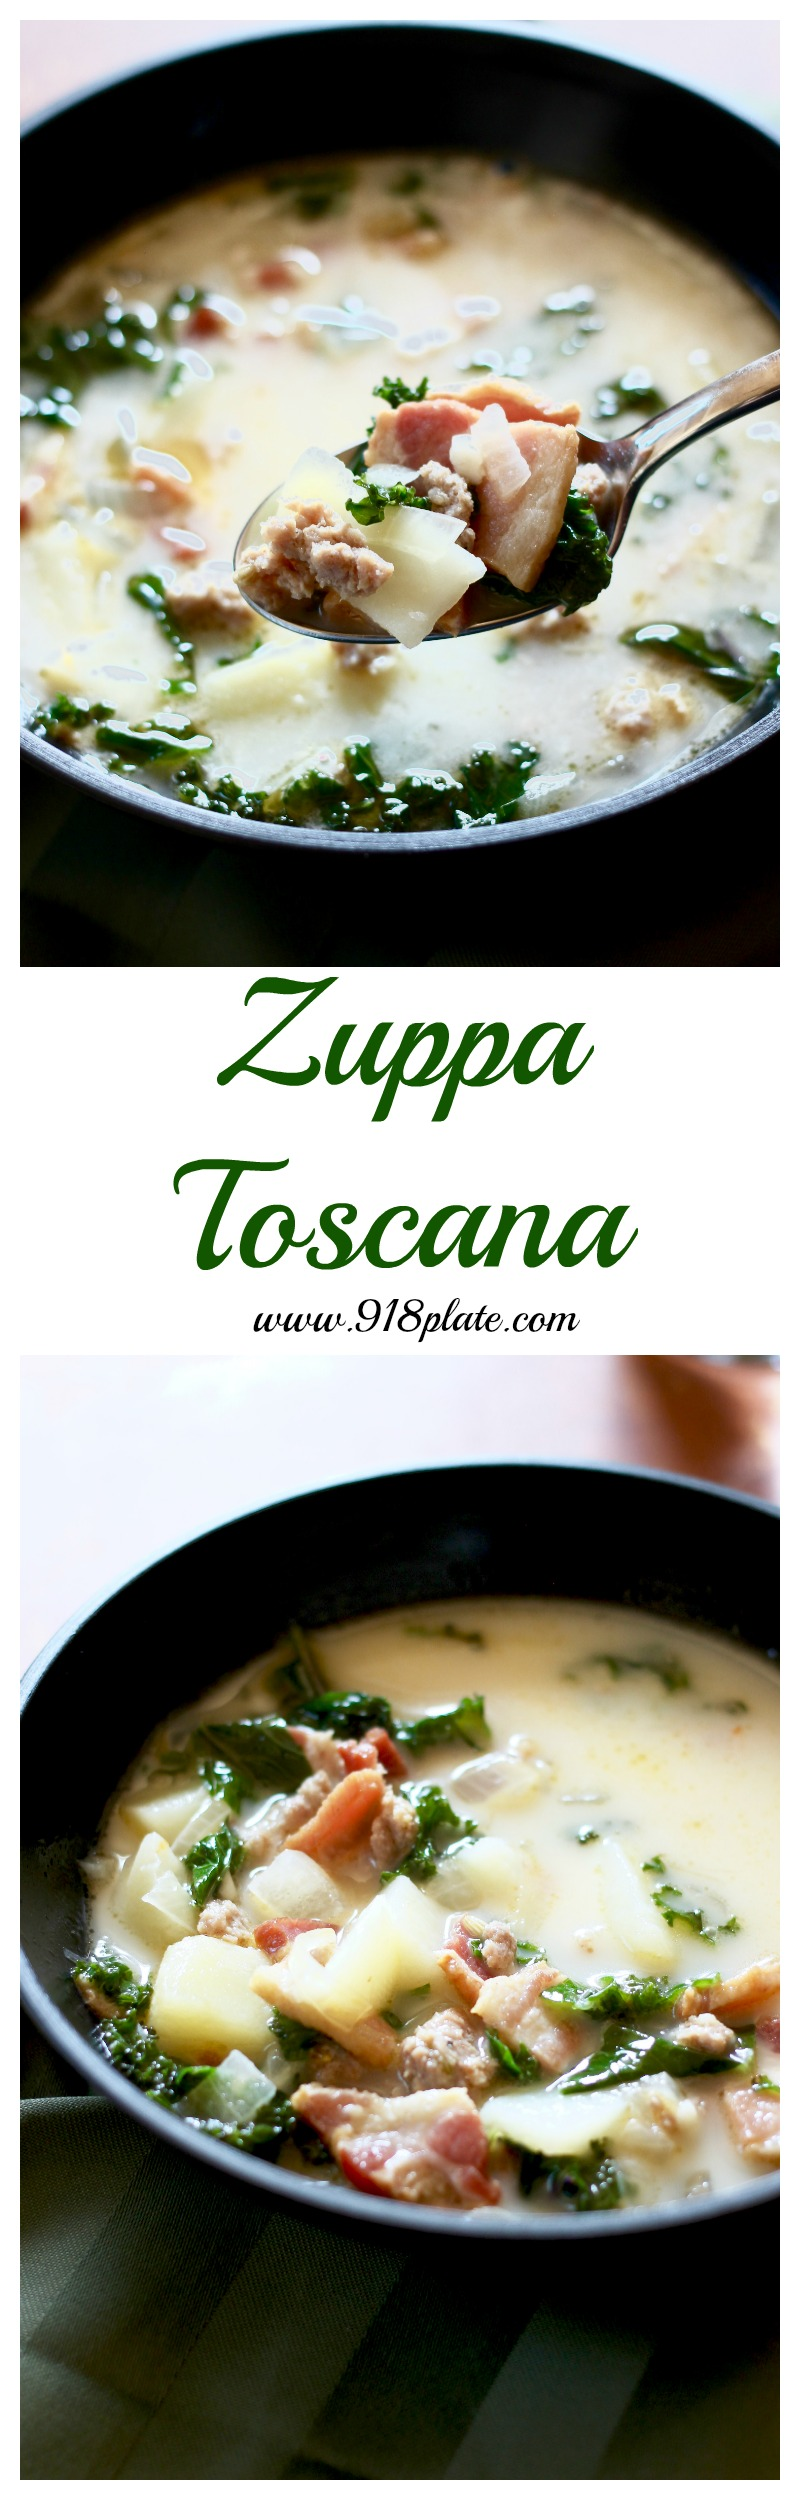 This is a better-than-Olive Garden version of Zuppa Toscana - complete with local food flair.